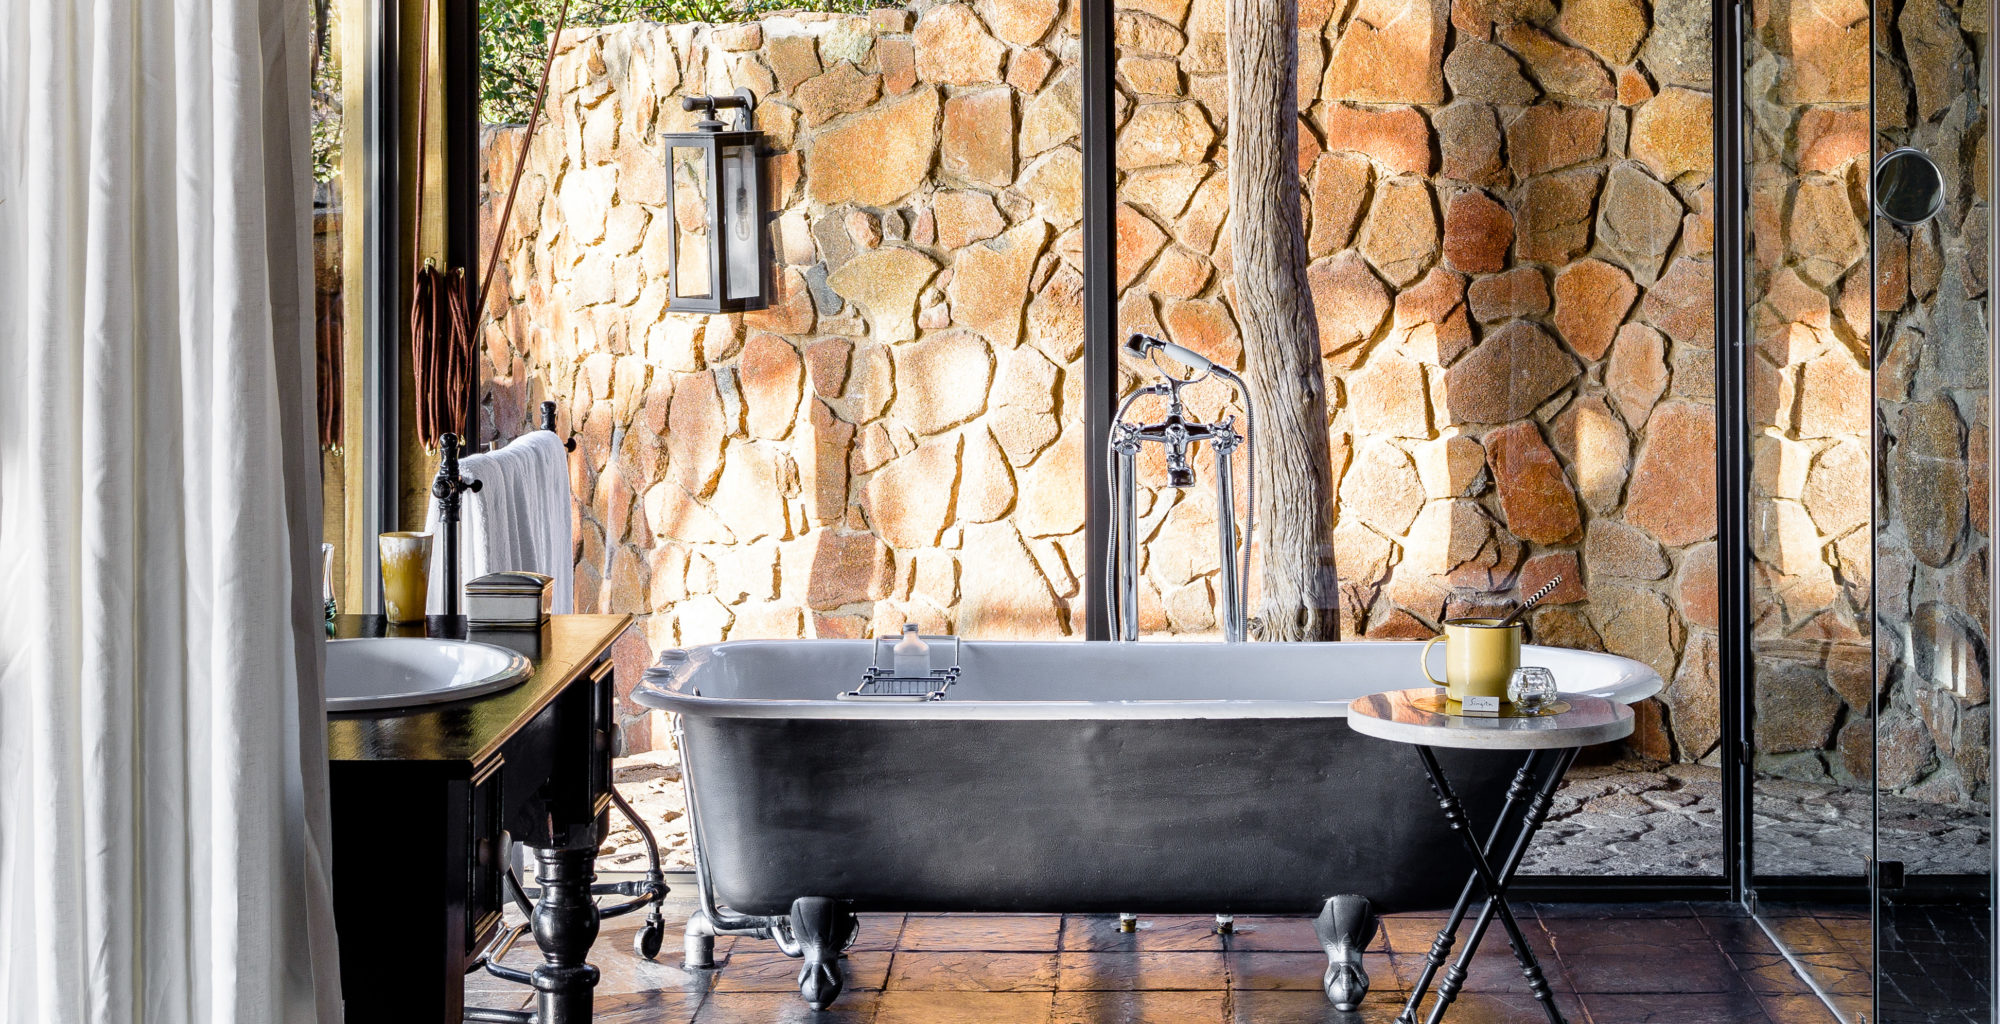 South-Africa-Singita-Ebony-Bathroom